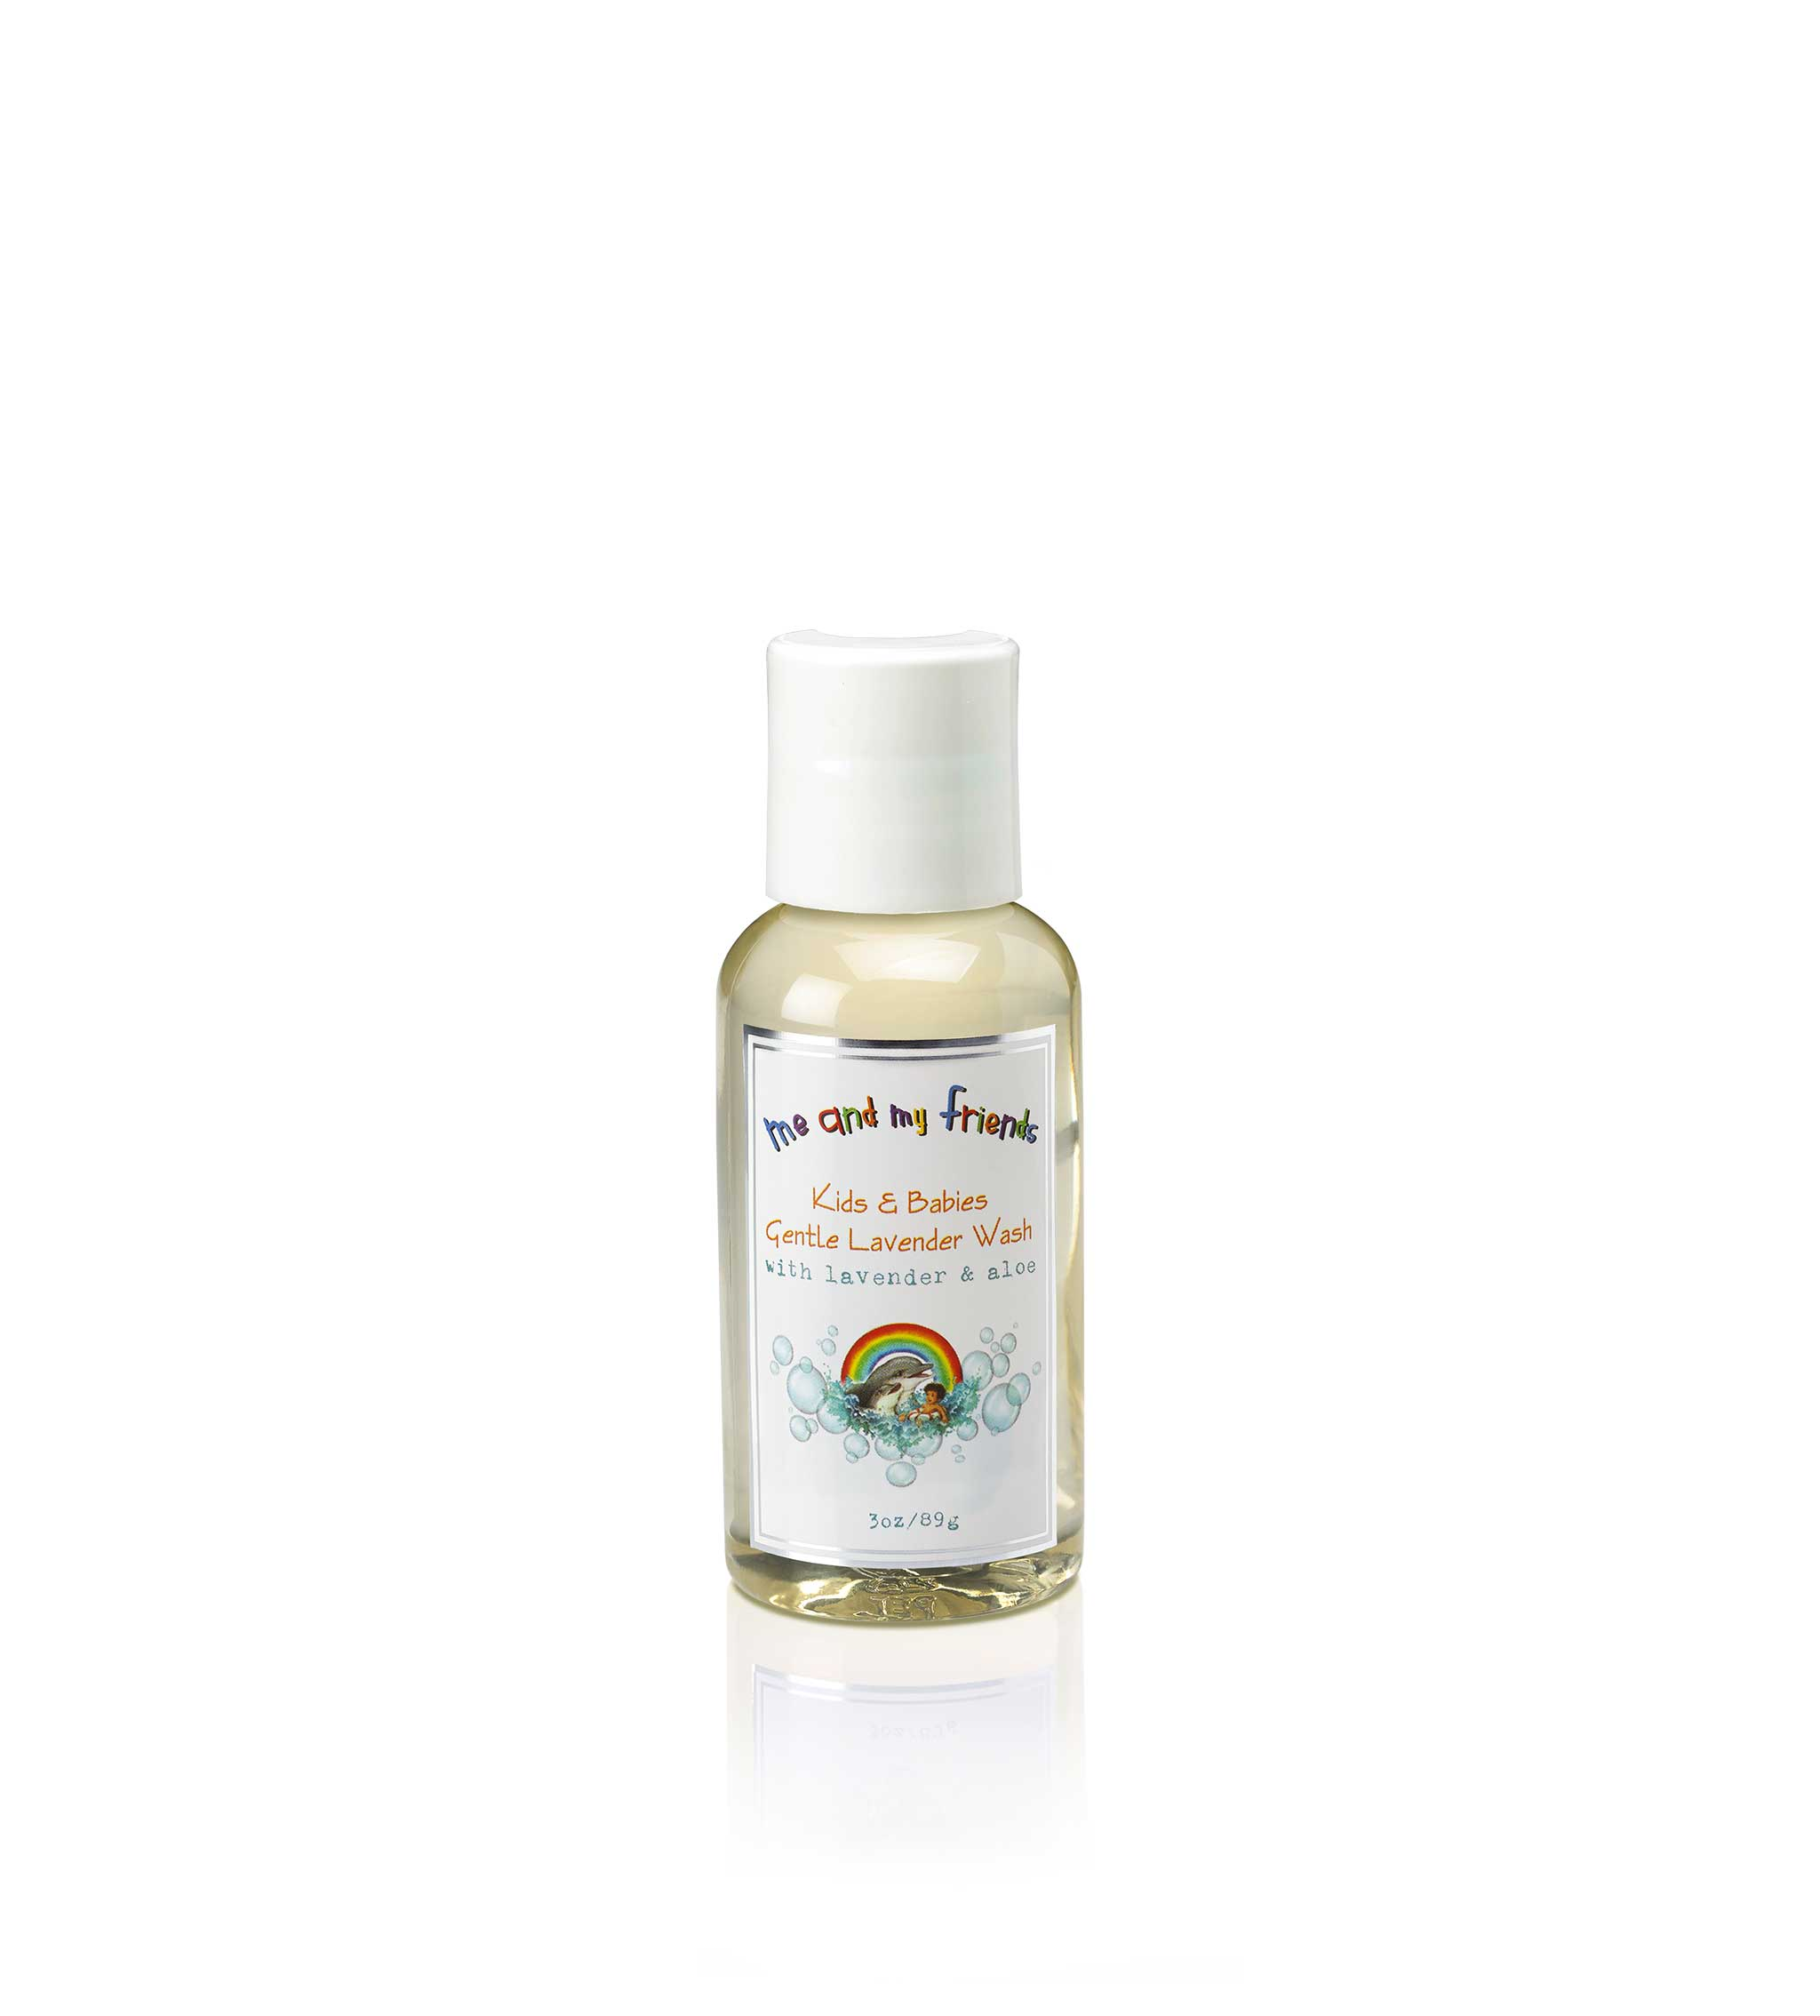 3oz bottle of Nabila K's 'Me and My Friends' Kids and Babies Gentle Lavender Wash with Lavender and Aloe